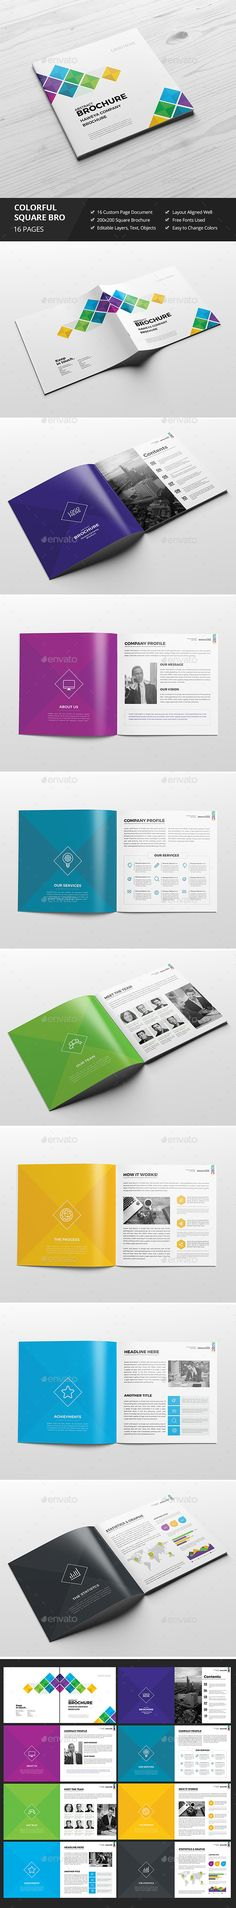 Haweya Colorful Square Brochure Template PSD